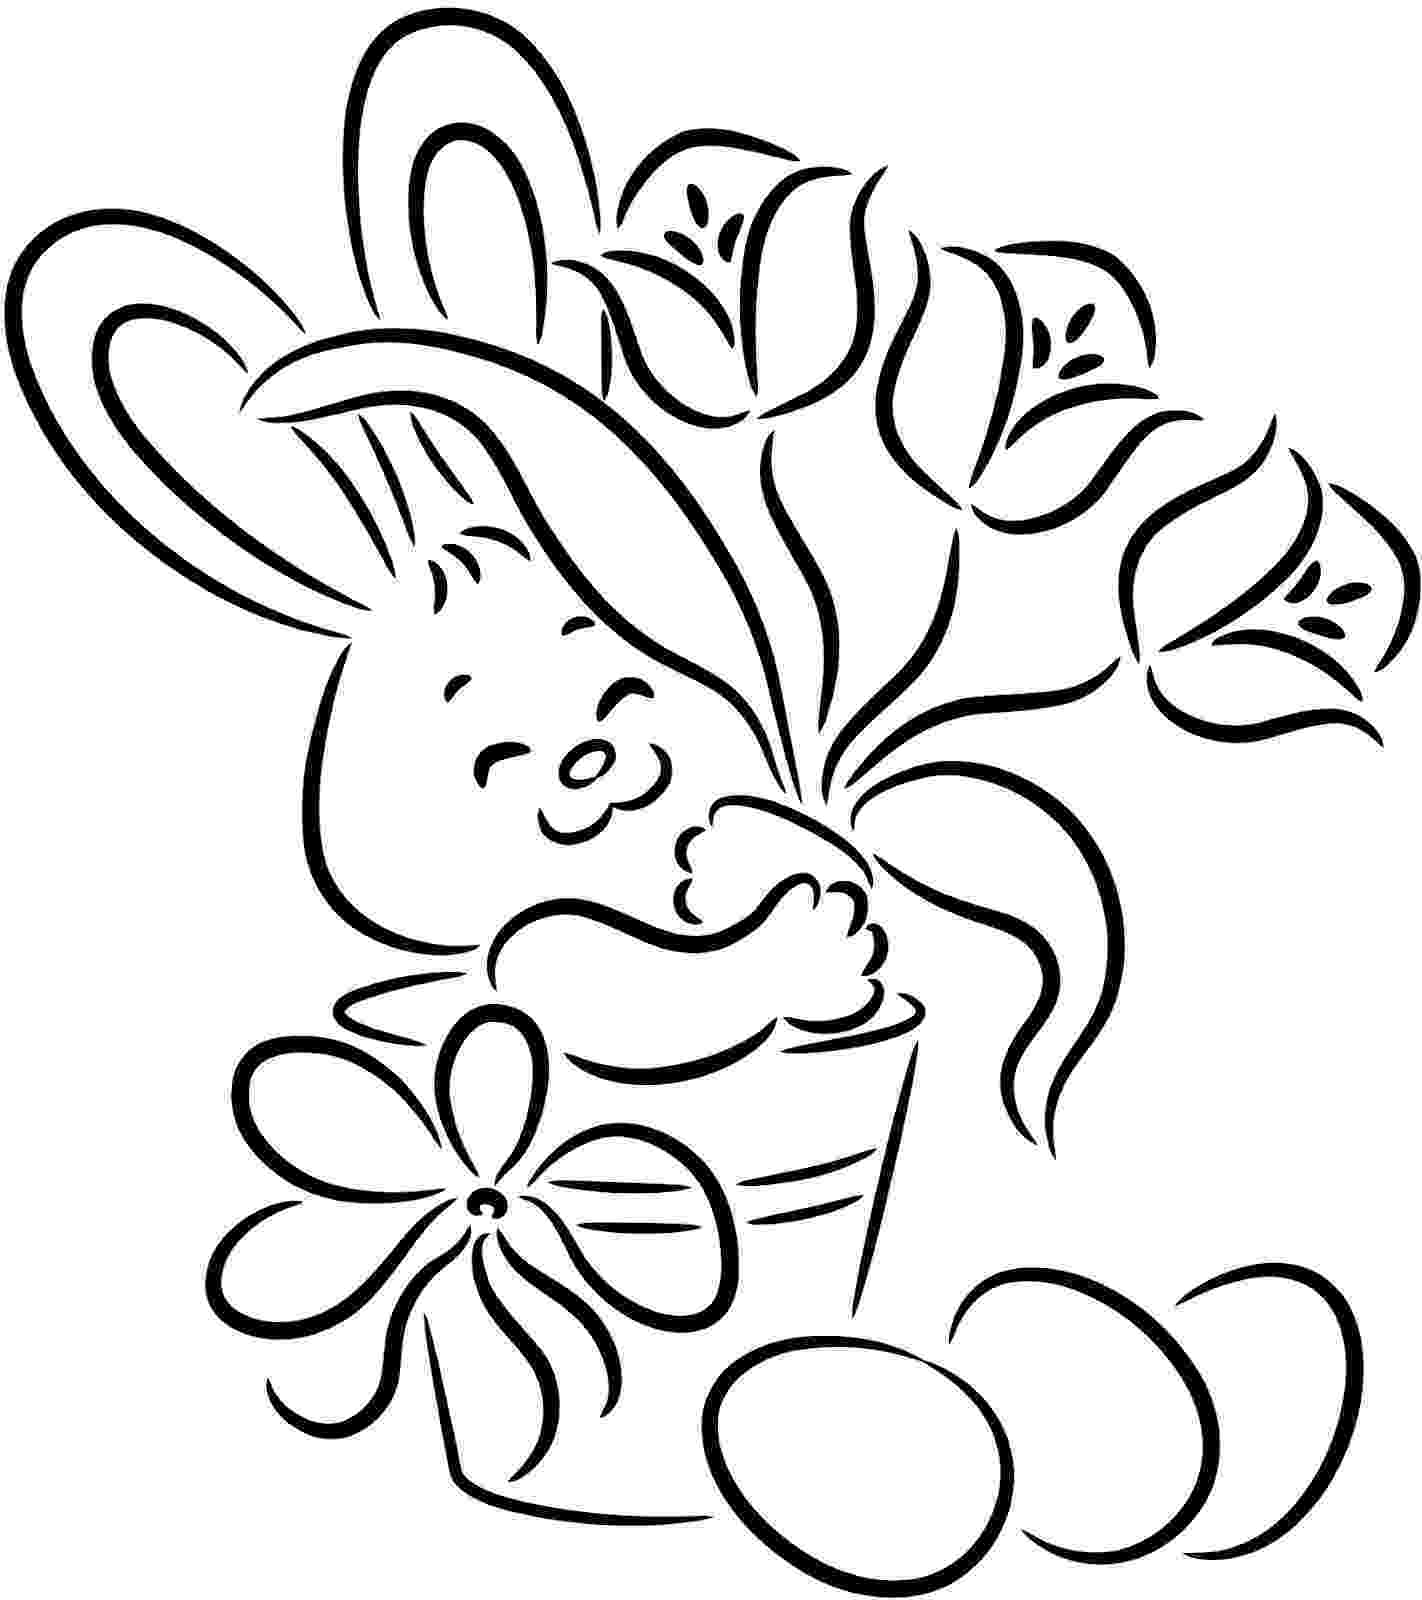 easter bunny coloring sheet 16 easter bunny coloring pages gtgt disney coloring pages coloring sheet easter bunny